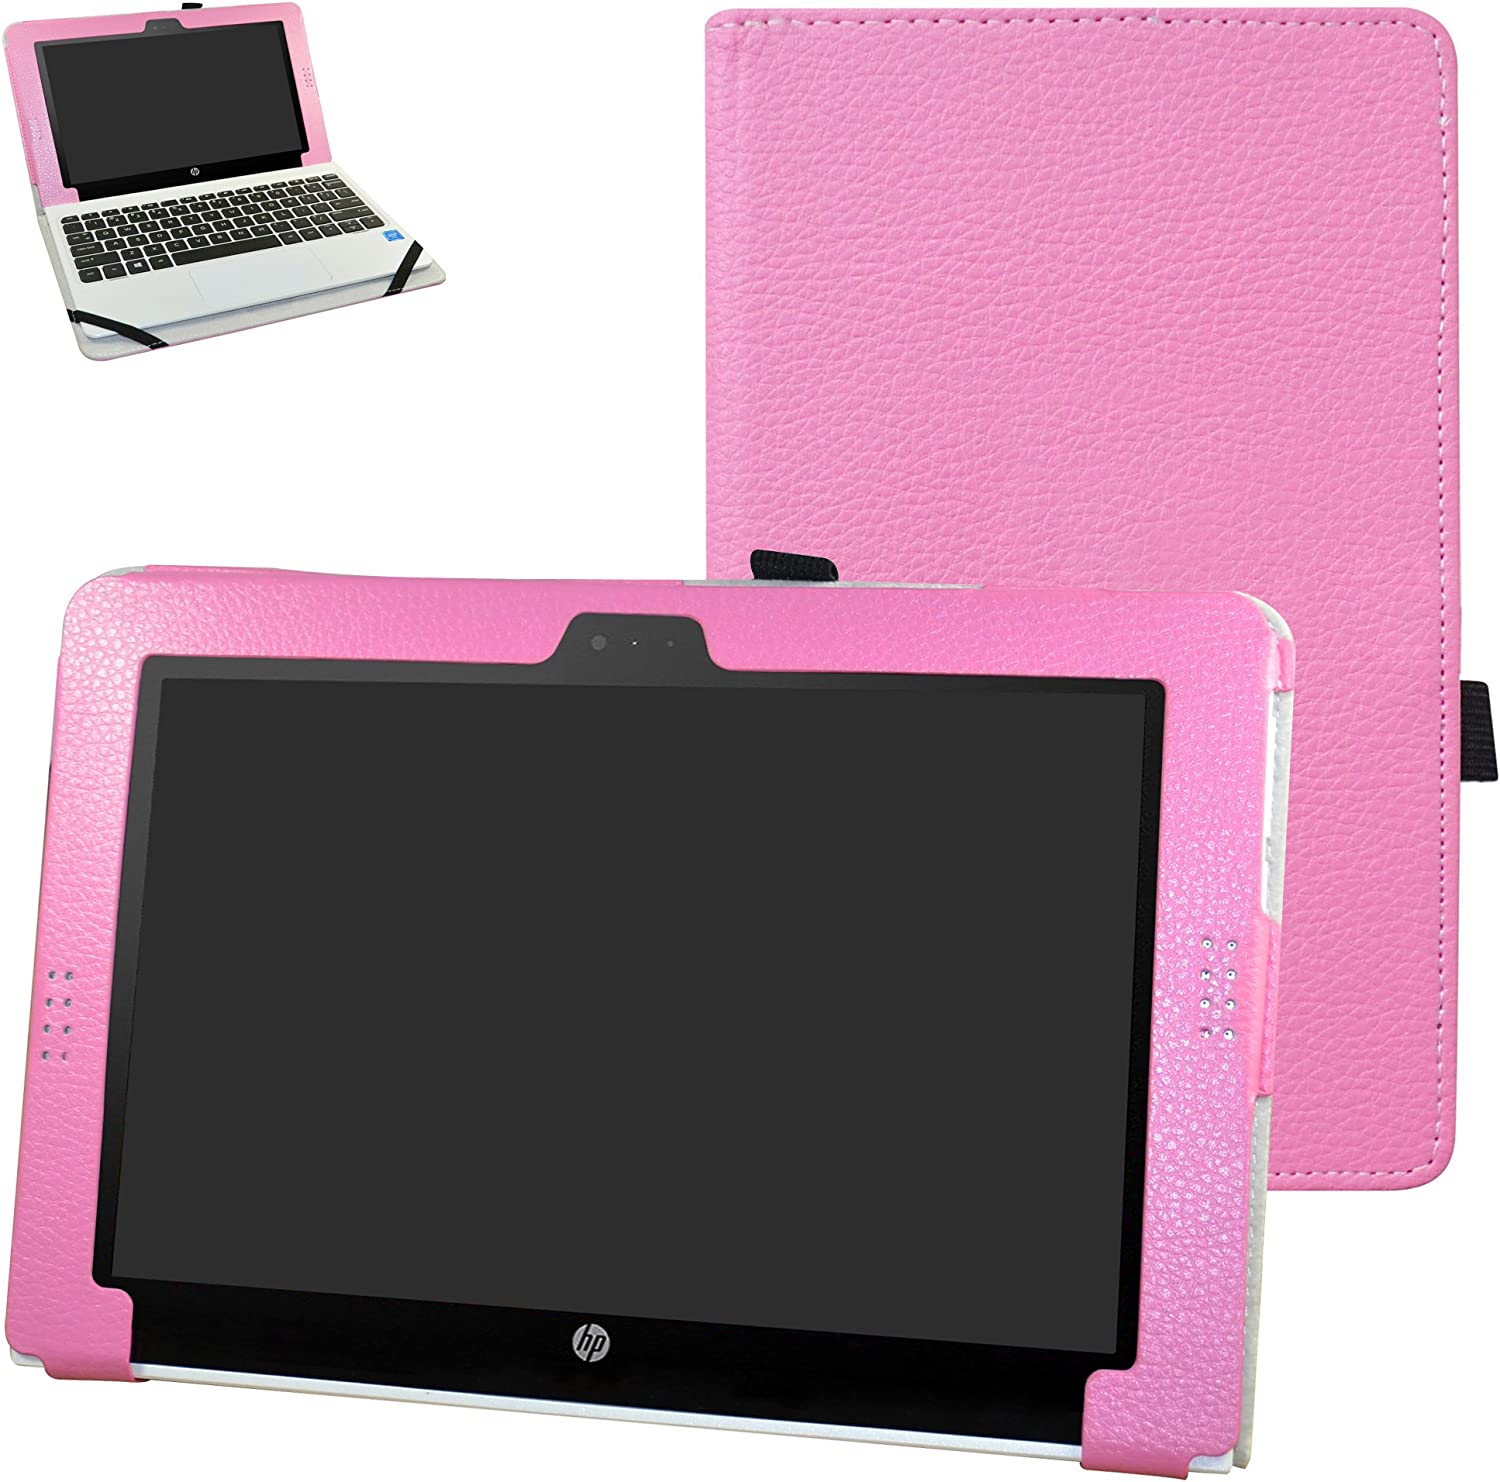 "HP Pavilion x2 10 / HP x2 210 G1 Case,Mama Mouth PU Leather Folio Stand Cover for 10.1"" HP Pavilion X2 10-n113dx n114dx n123dx n124dx n013dx / HP x2 210 G1 Detachable 2-in-1 Laptop/Tablet,Pink"